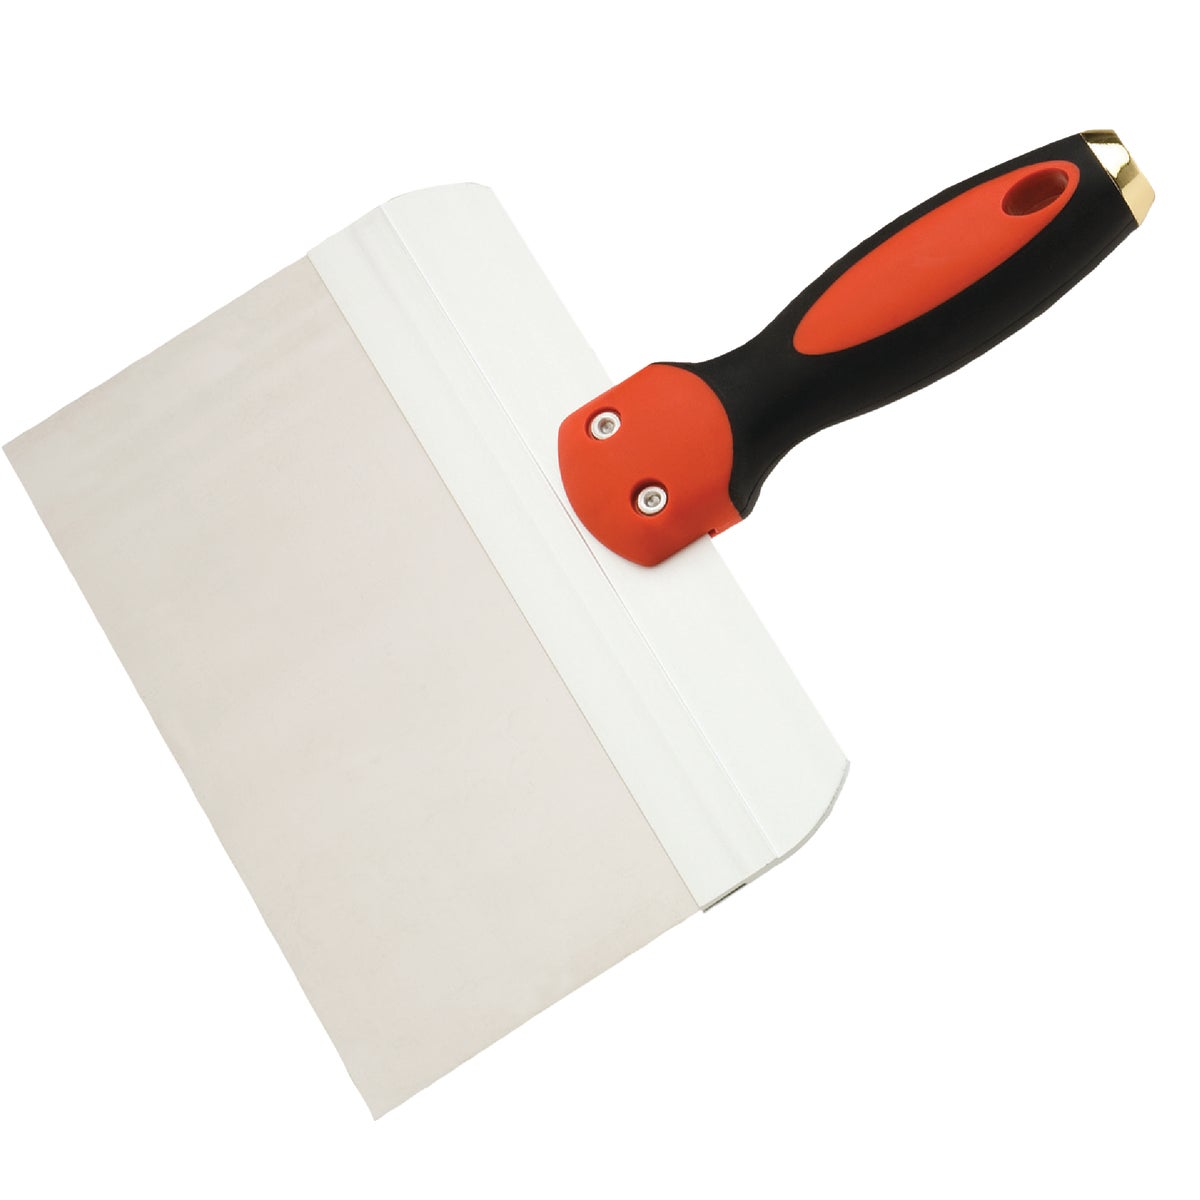 "8"" SS TAPING KNIFE ERGO - 322886 by Do it Best Global Sourcing"